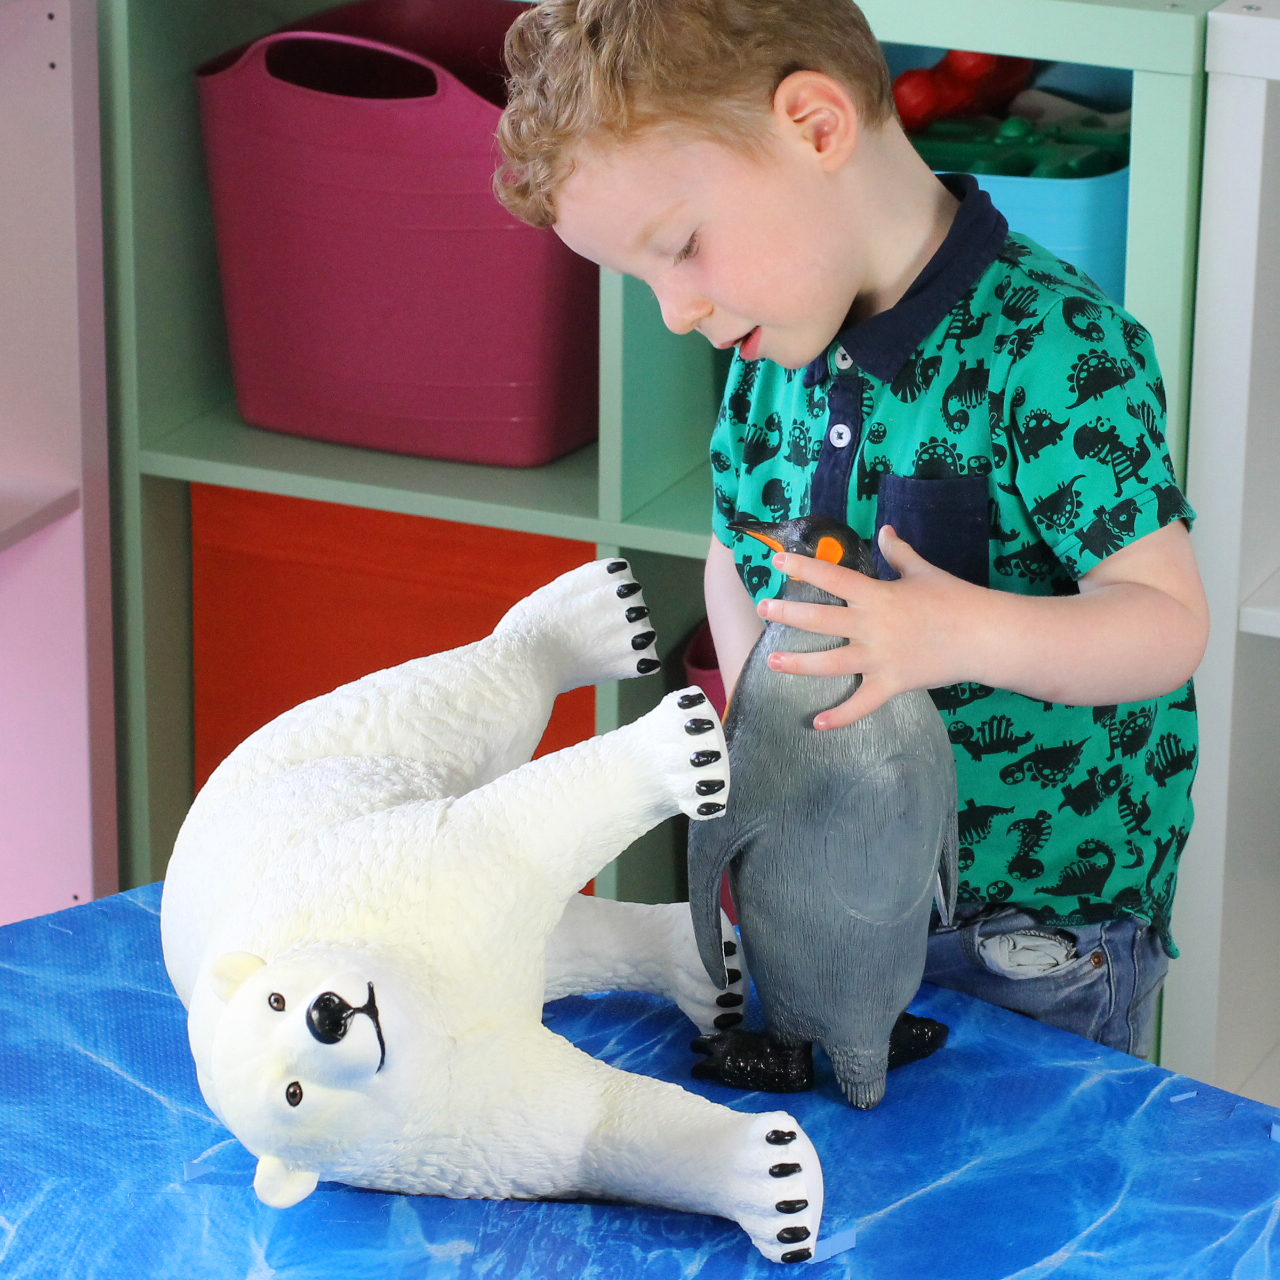 Initiate play and learning, children can let the animals roam free or build them a habitat to live in.